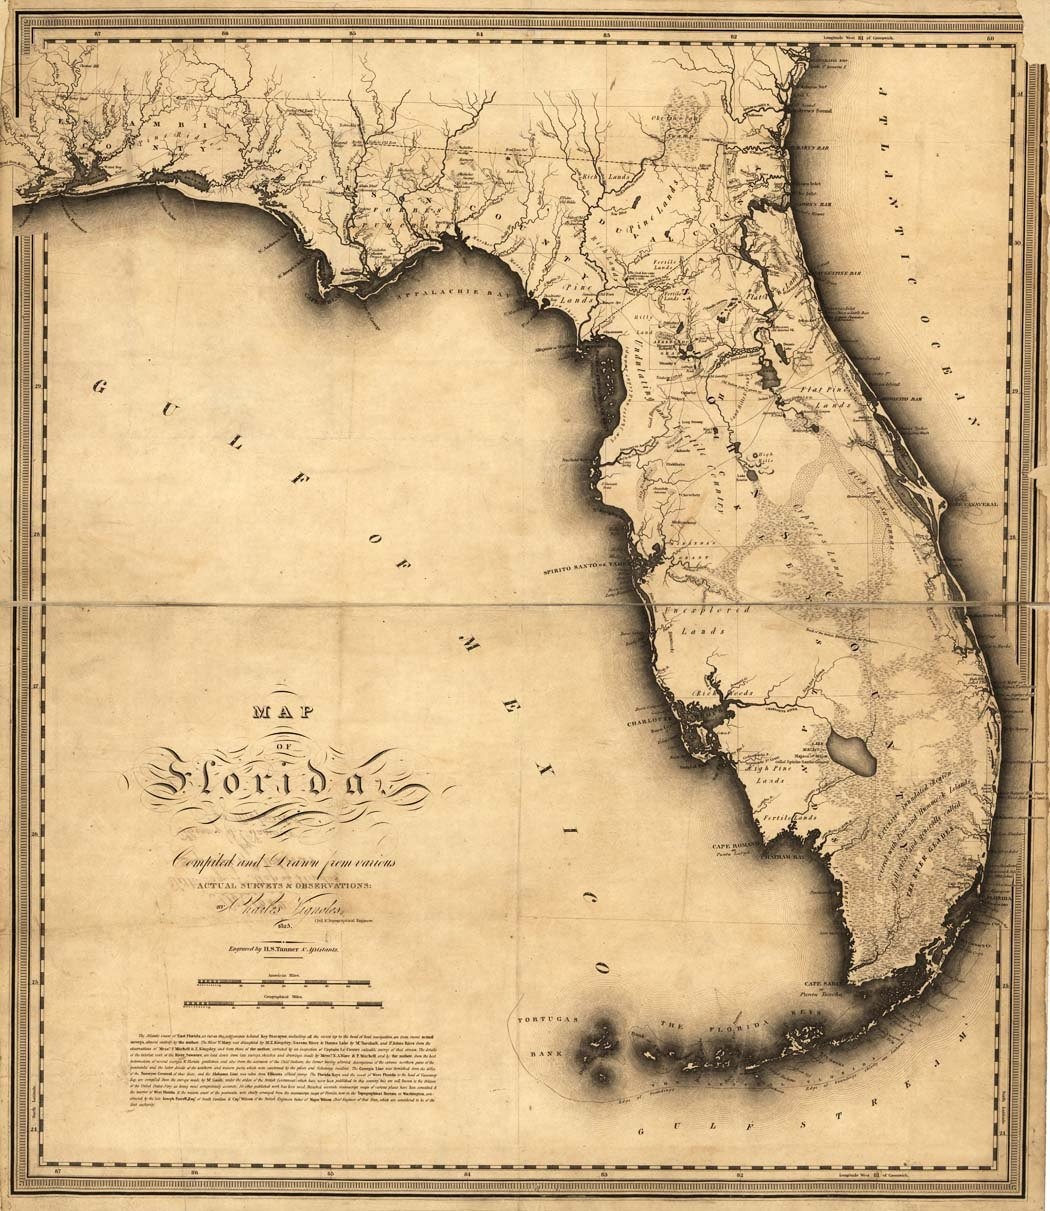 Antique Florida Map 1894-1895 - Antique Florida Map